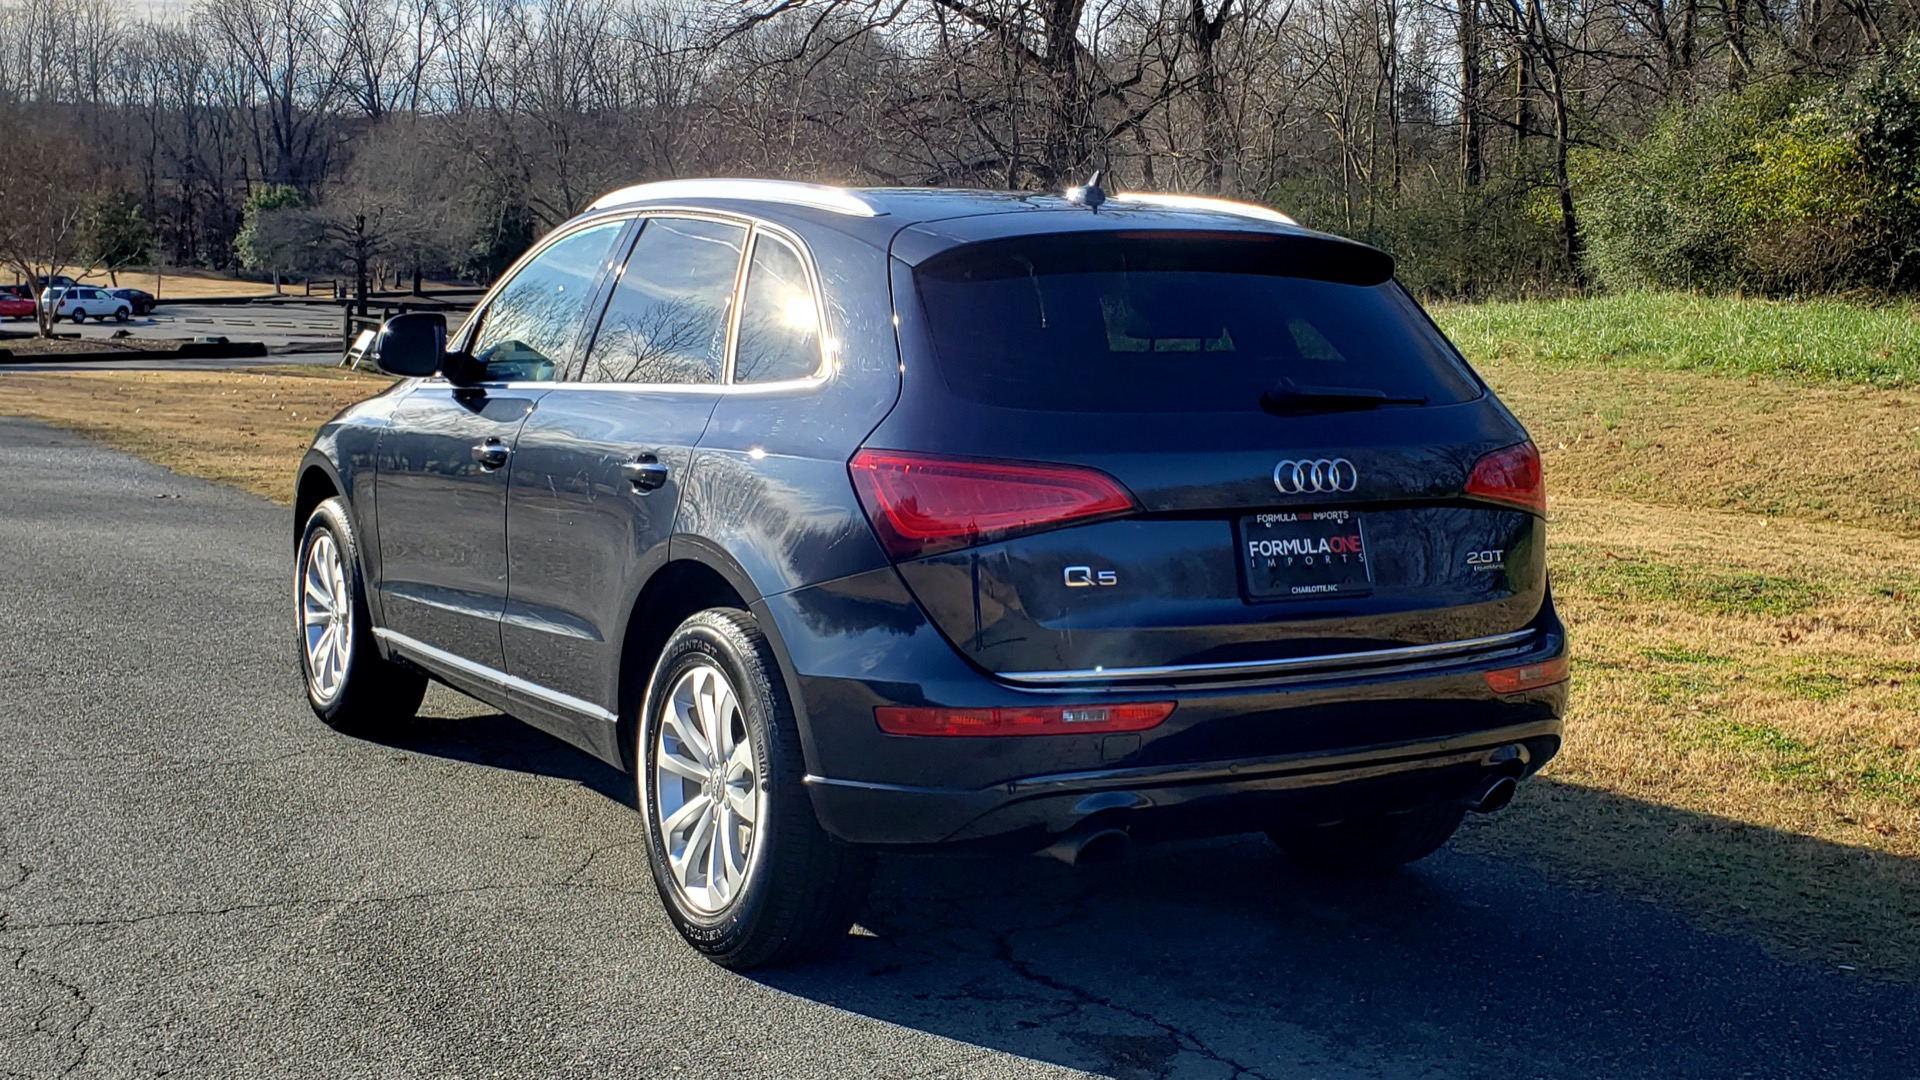 Used 2016 Audi Q5 PREMIUM PLUS 2.0T TIPTRONIC / TECH PKG / NAV / SUNROOF / REARVIEW for sale Sold at Formula Imports in Charlotte NC 28227 3